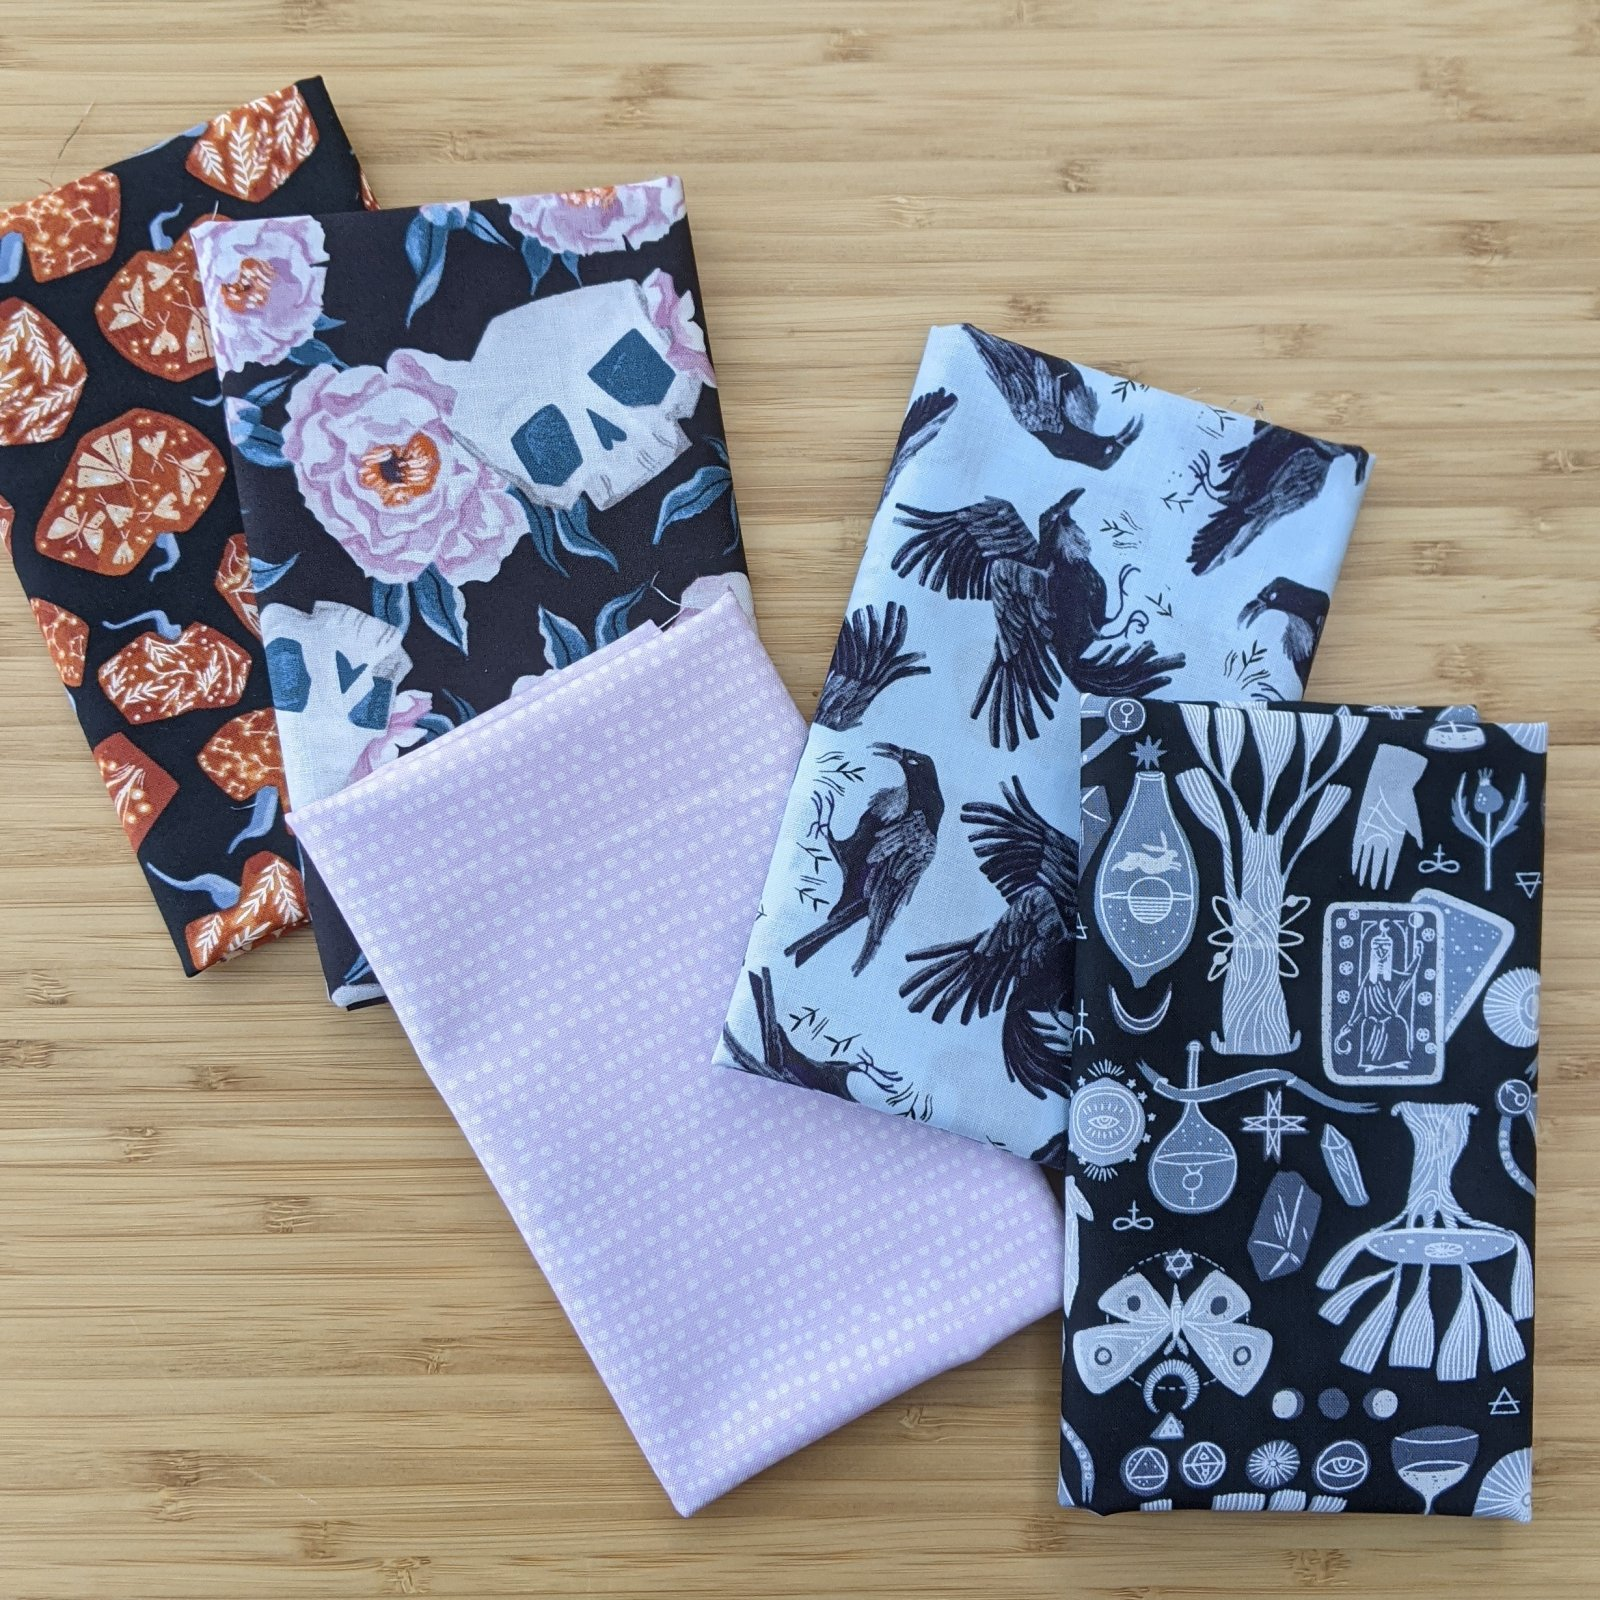 Toil and Trouble FQ Bundle, 5pc